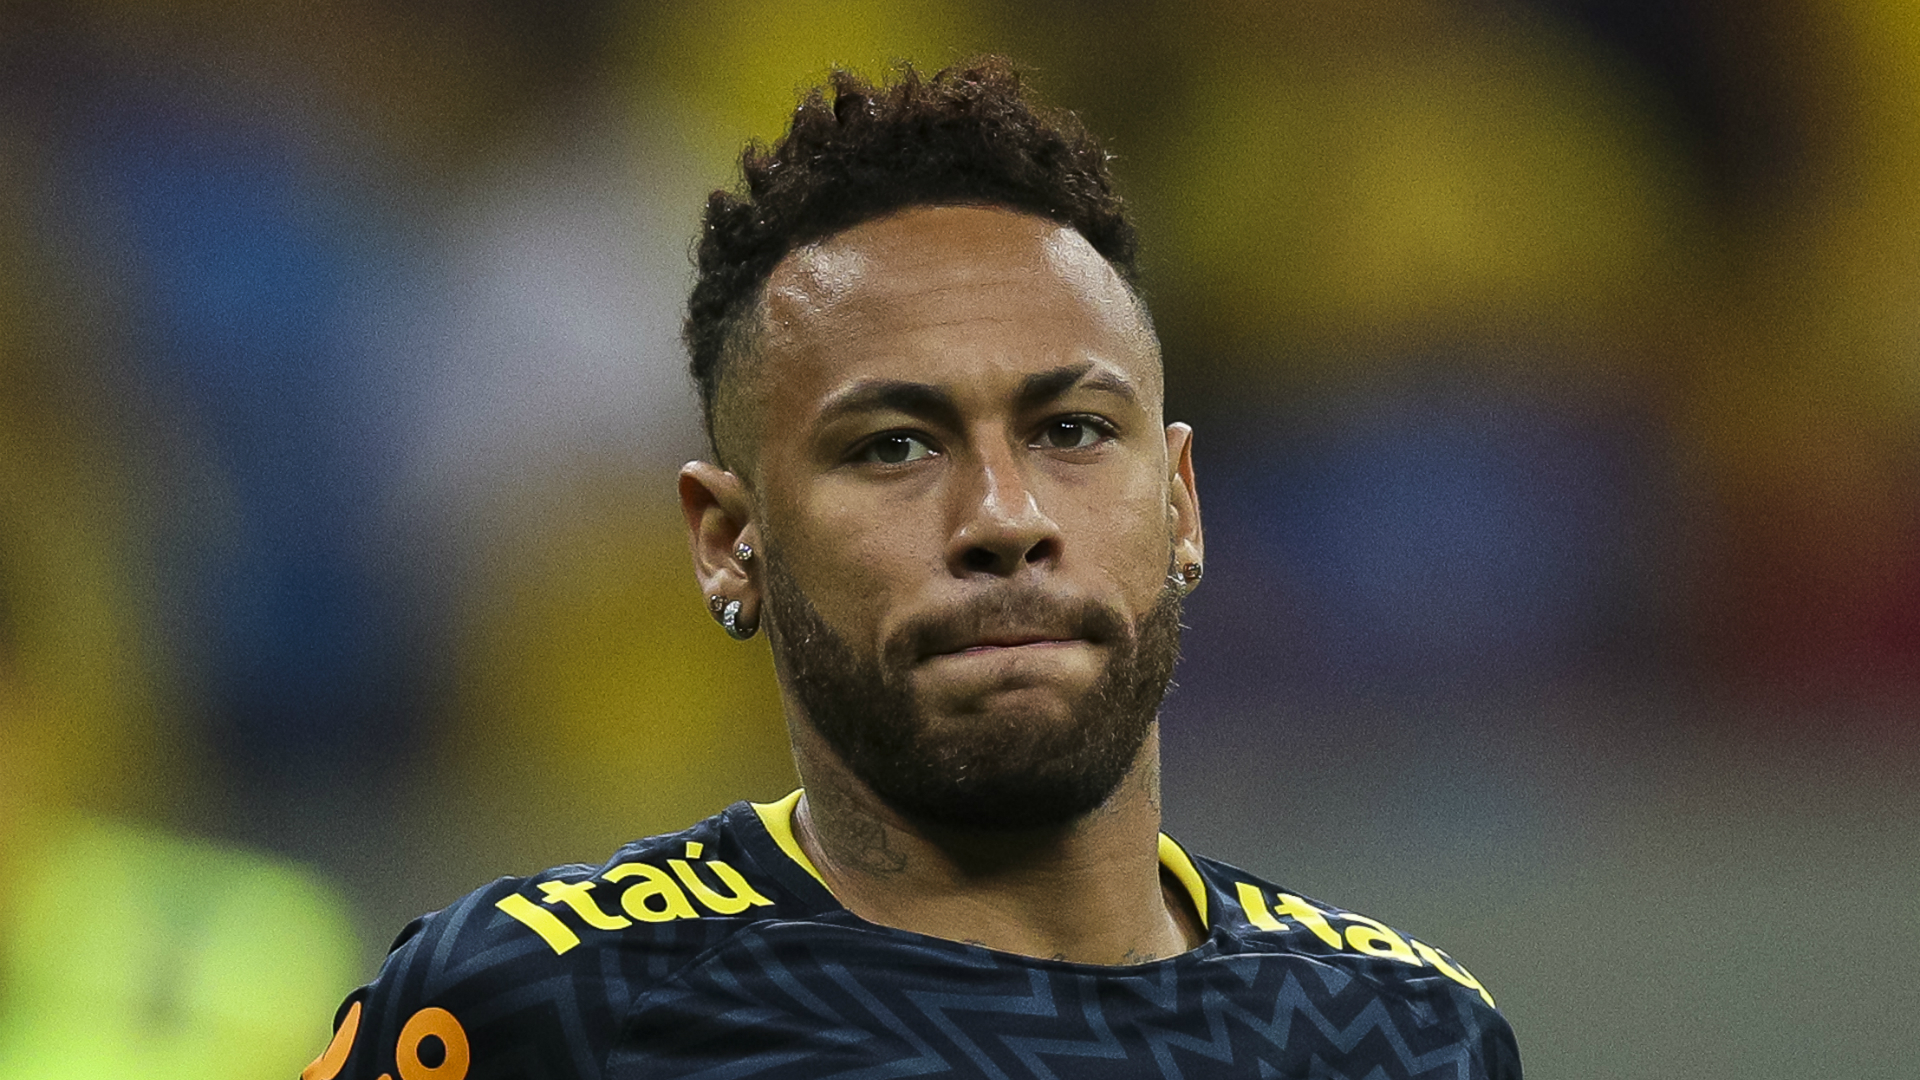 It is time for Neymar to decide, says Belletti